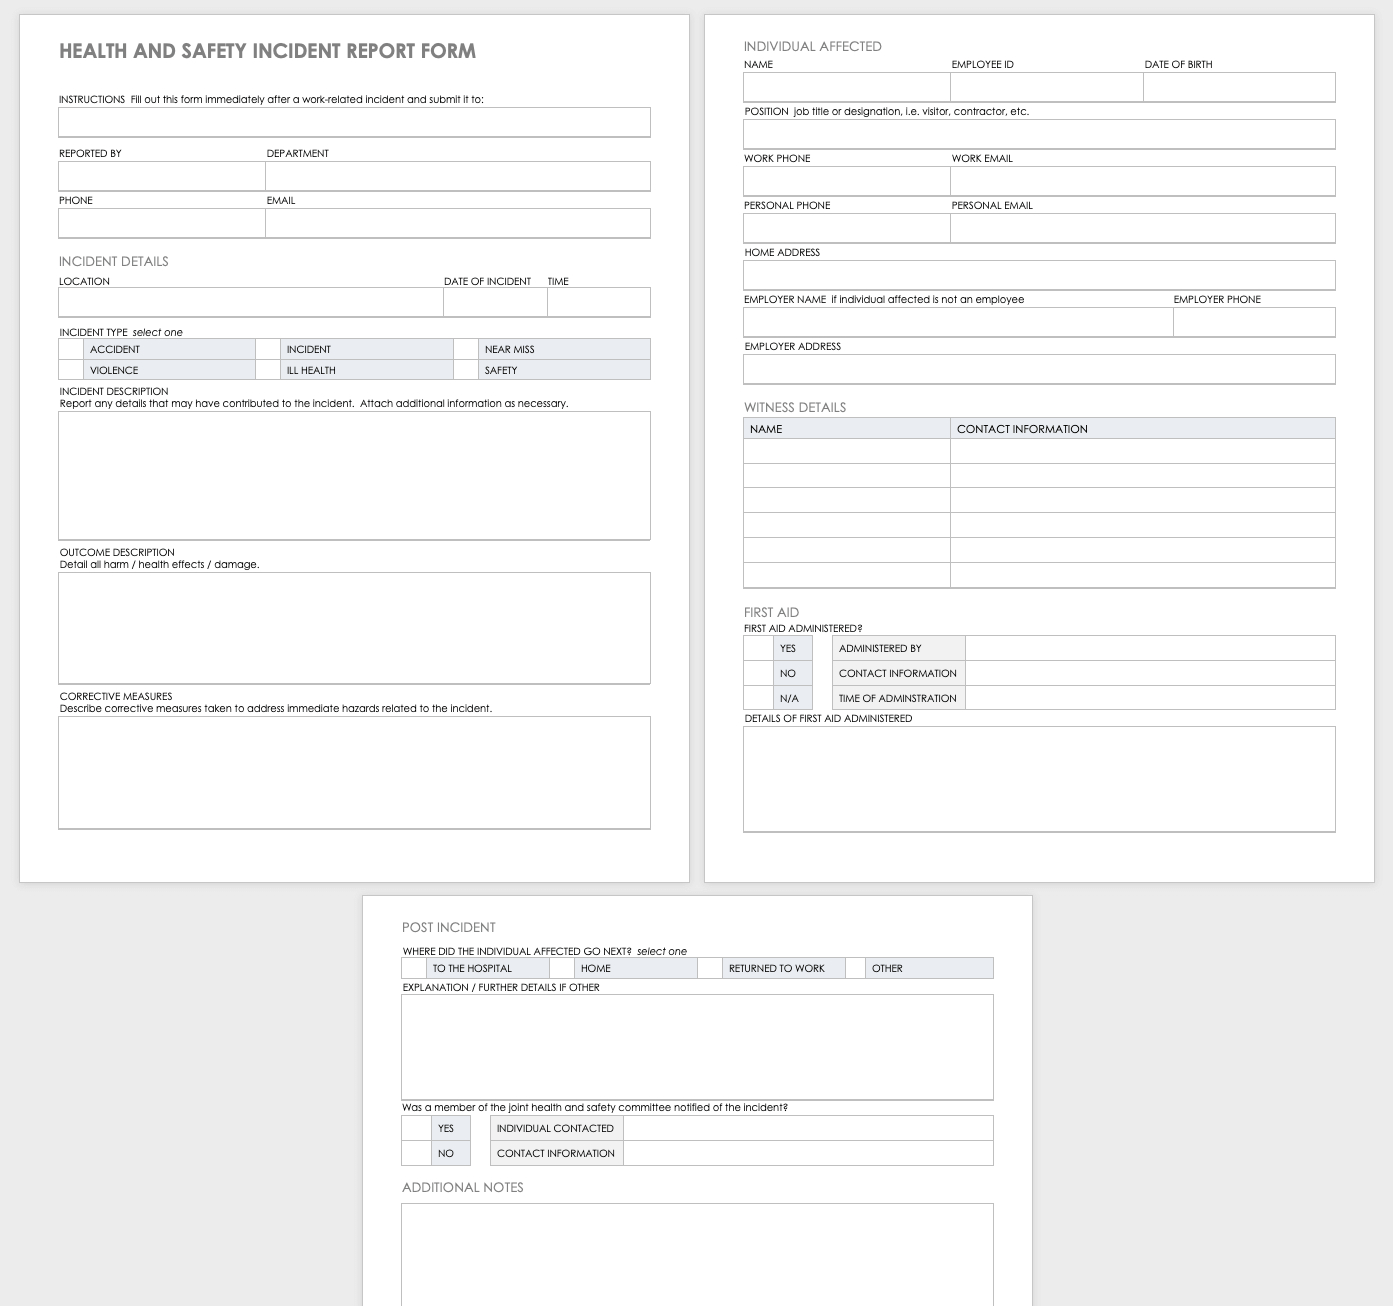 Free Workplace Accident Report Templates | Smartsheet With Regard To Health And Safety Incident Report Form Template